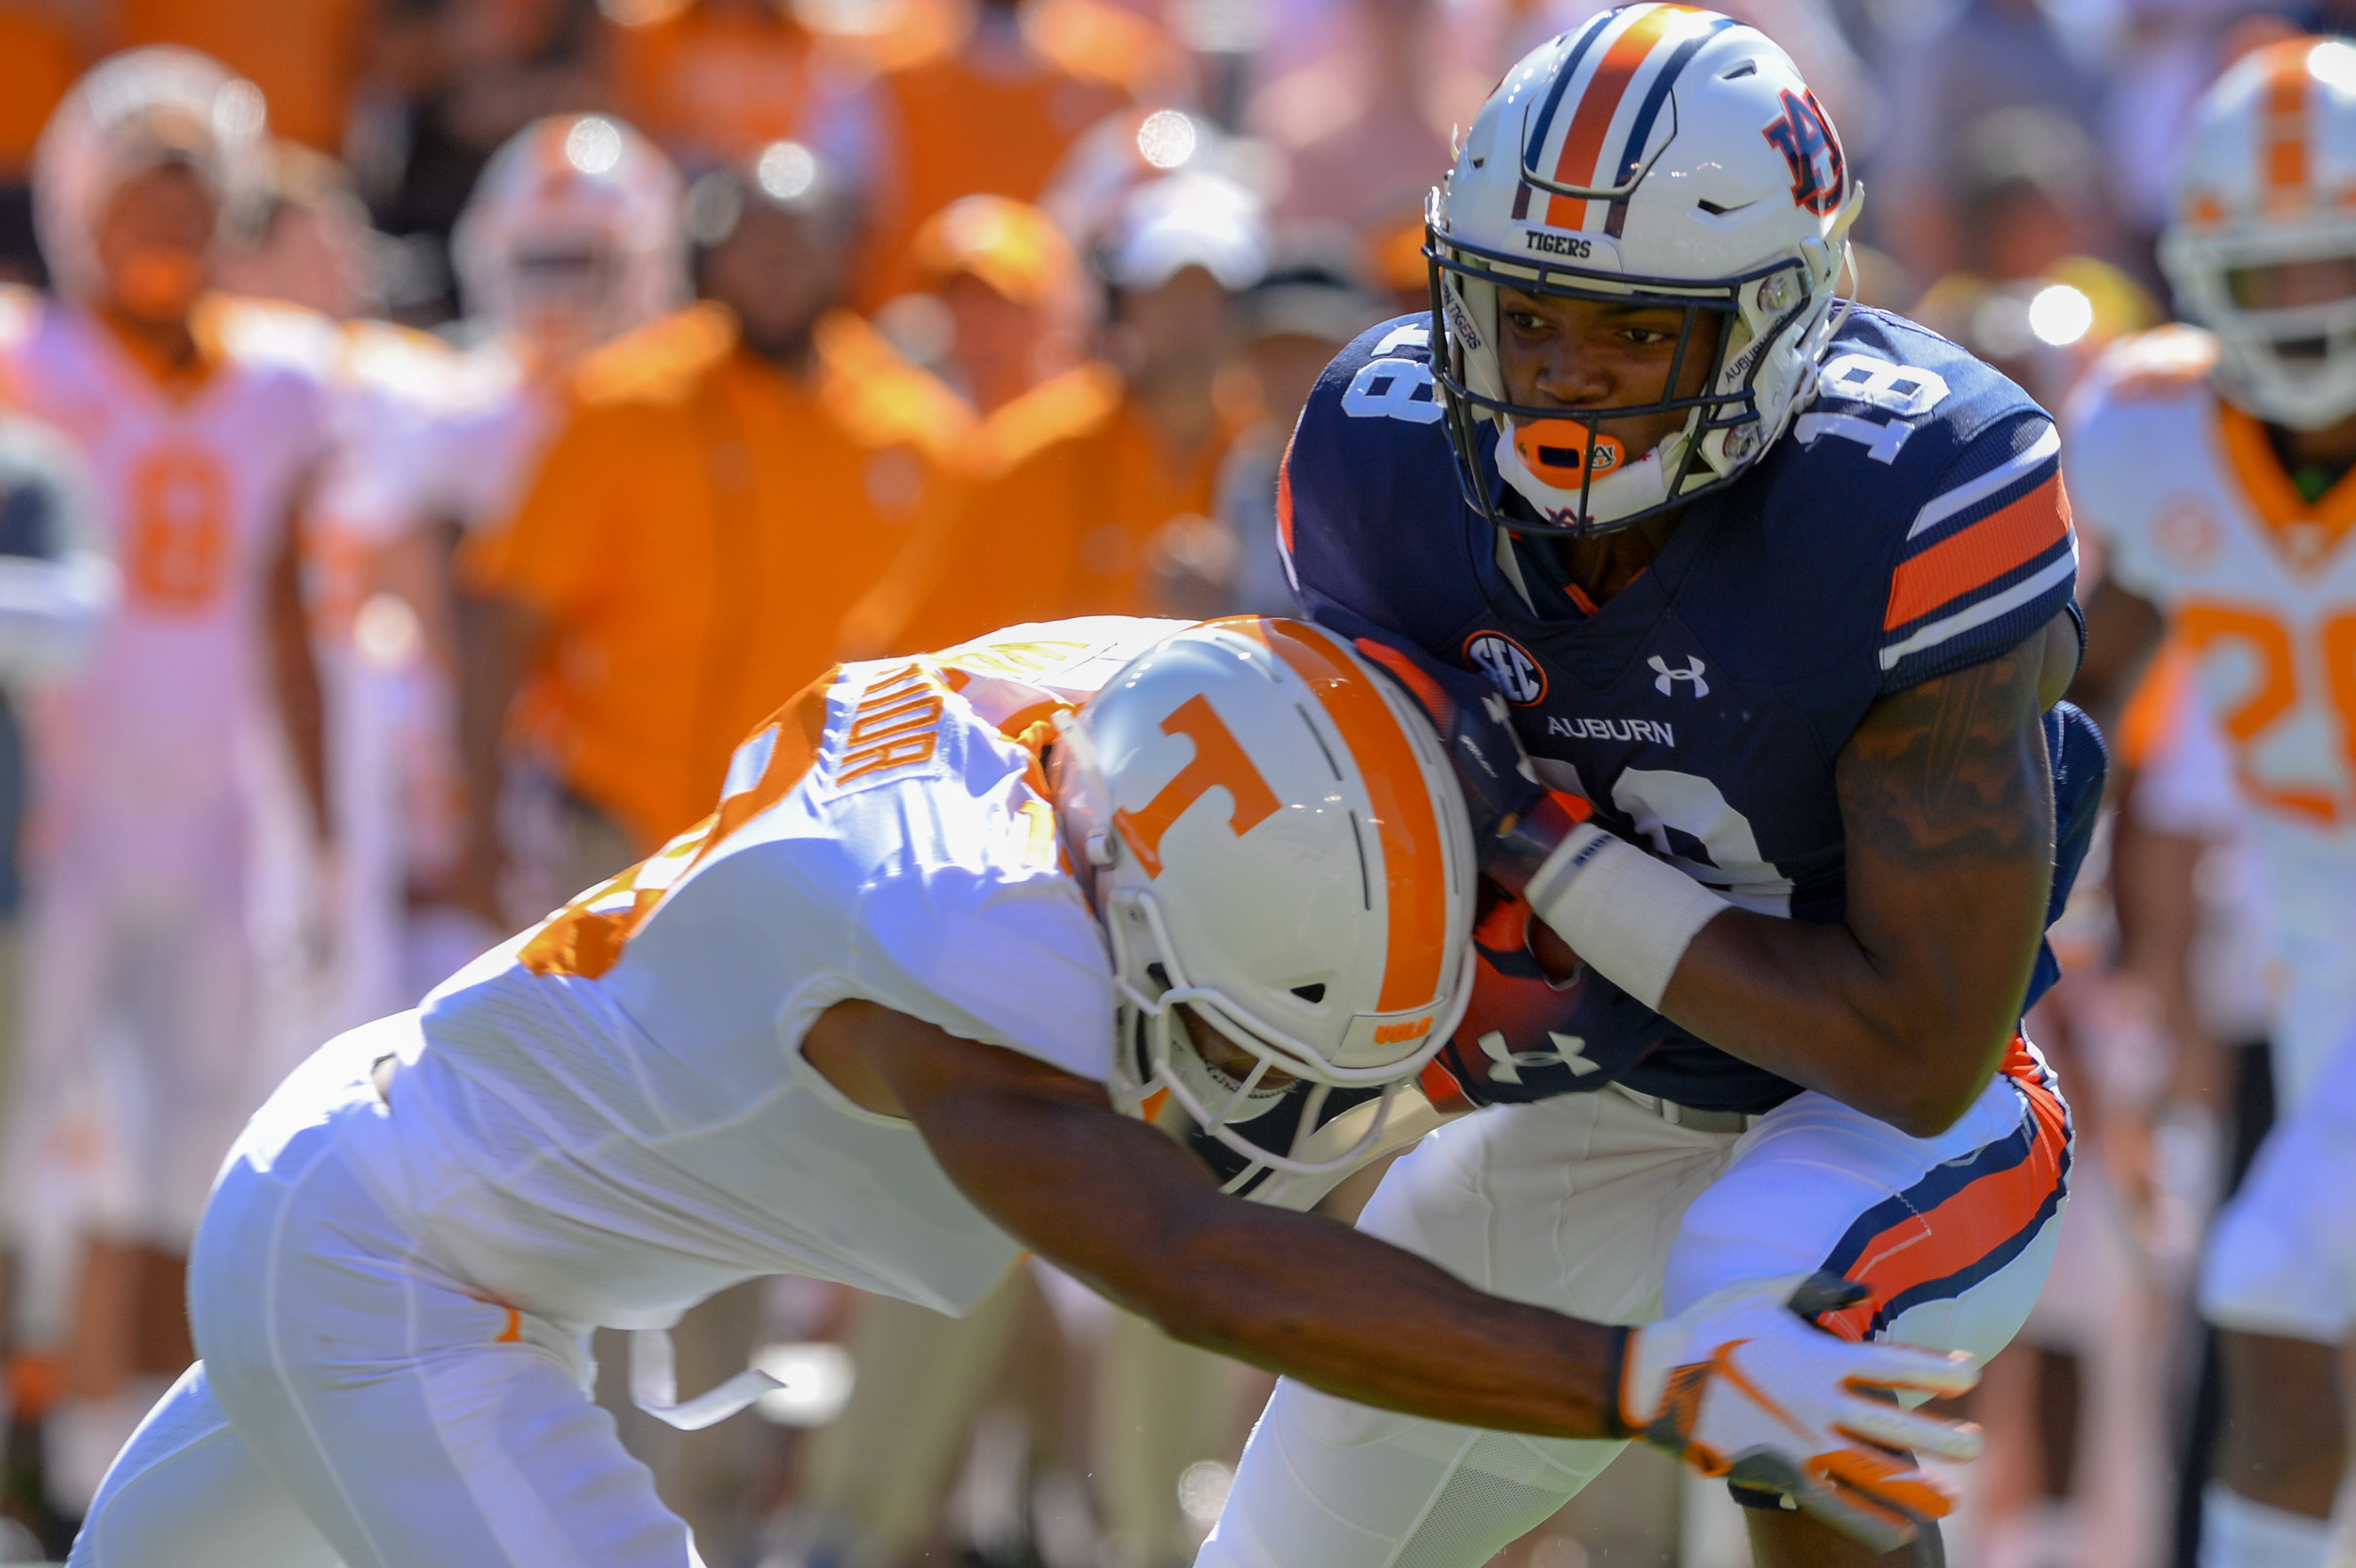 Tennessee Volunteers defensive back Nigel Warrior (18) makes a stop on Auburn Tigers wide receiver Seth Williams (18) during the first half of Saturday's game, at Jordan-Hare Stadium in Auburn, AL. Daily Mountain Eagle -  Jeff Johnsey